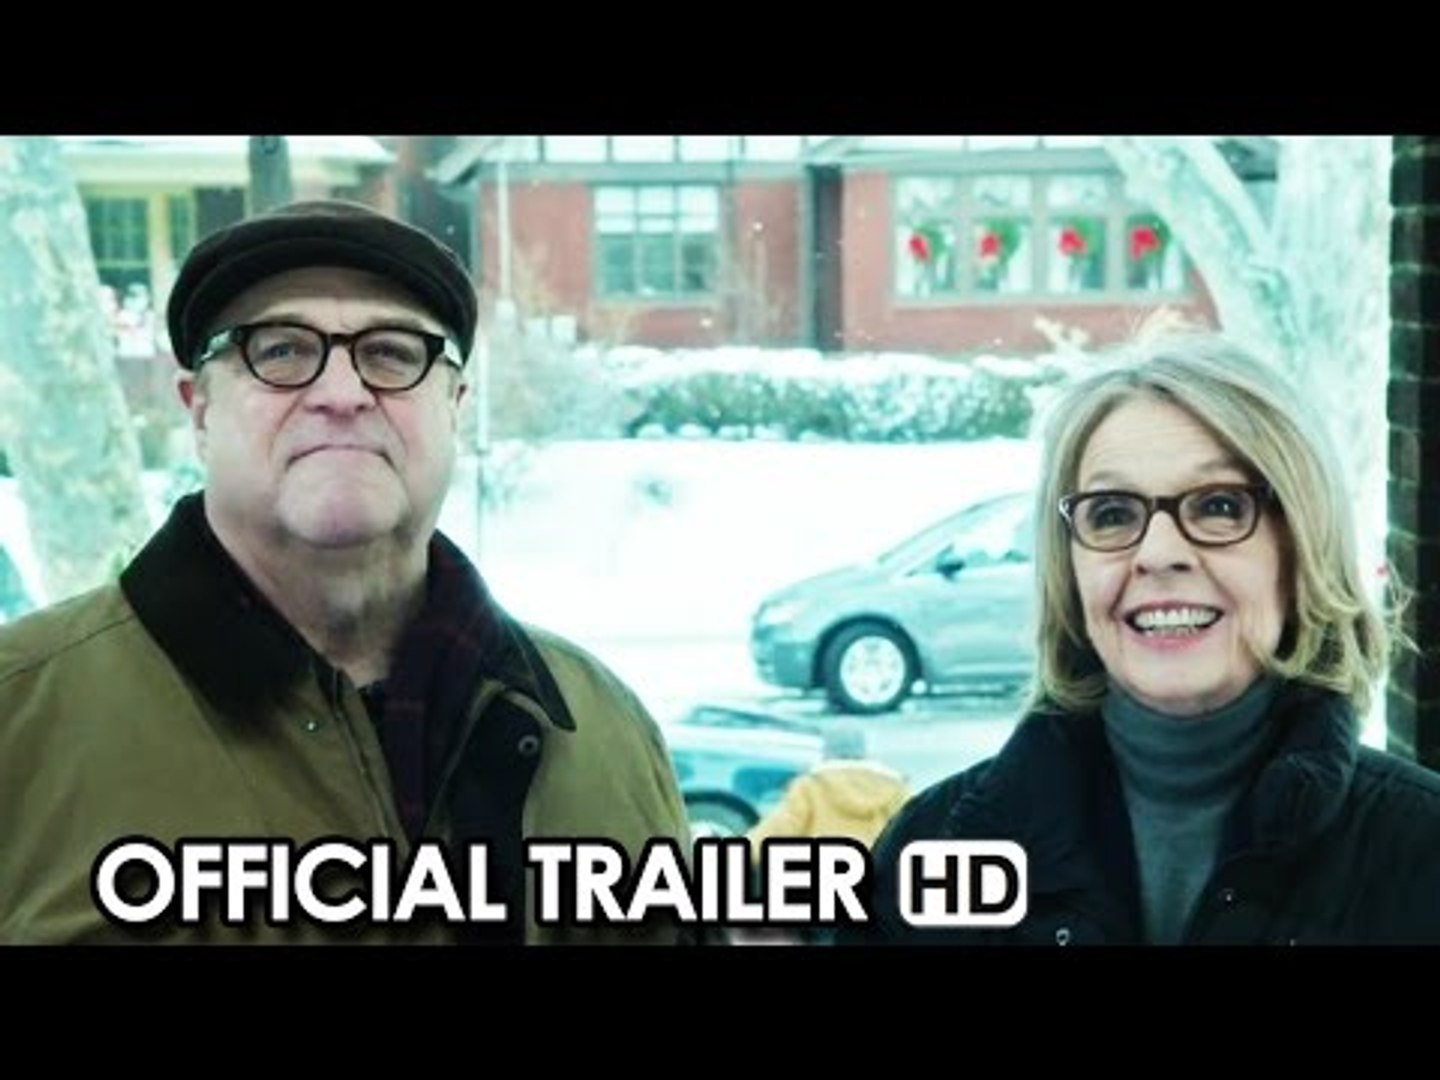 LOVE THE COOPERS ft. Olivia Wilde, Amanda Seyfried, Ed helms Official Trailer (2015) HD